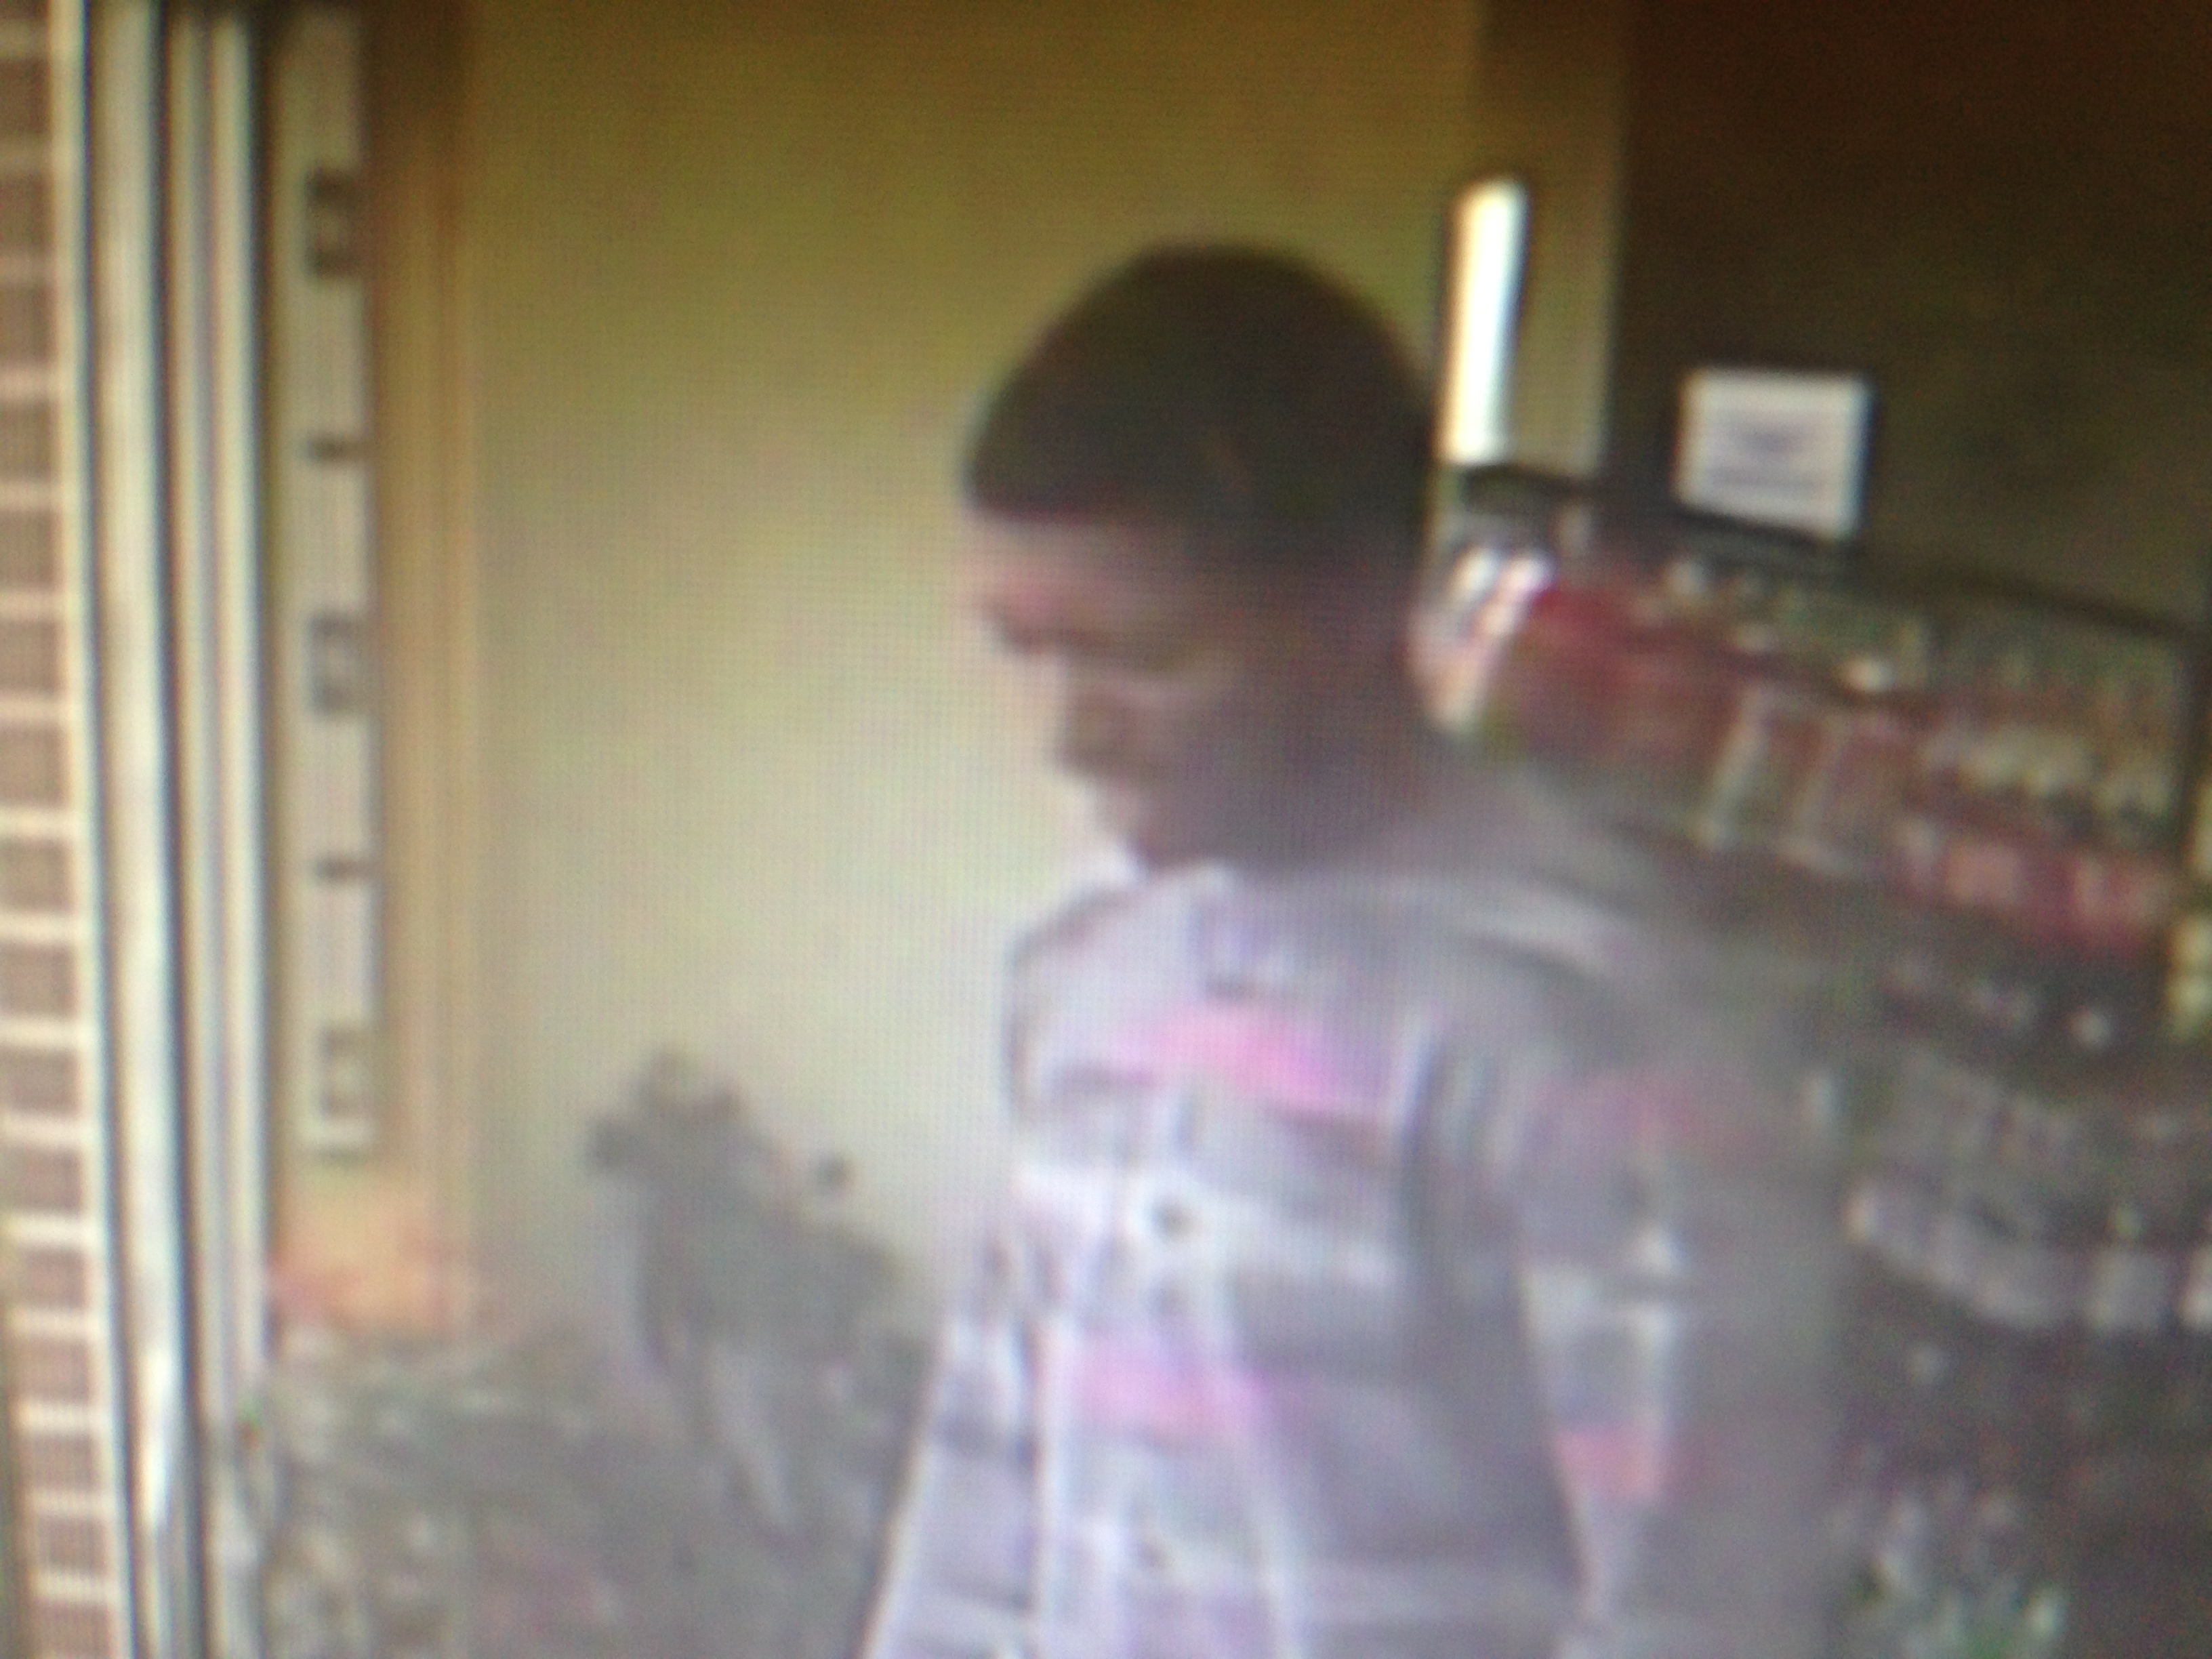 Police Ask For Public's Help Finding Larceny Suspect